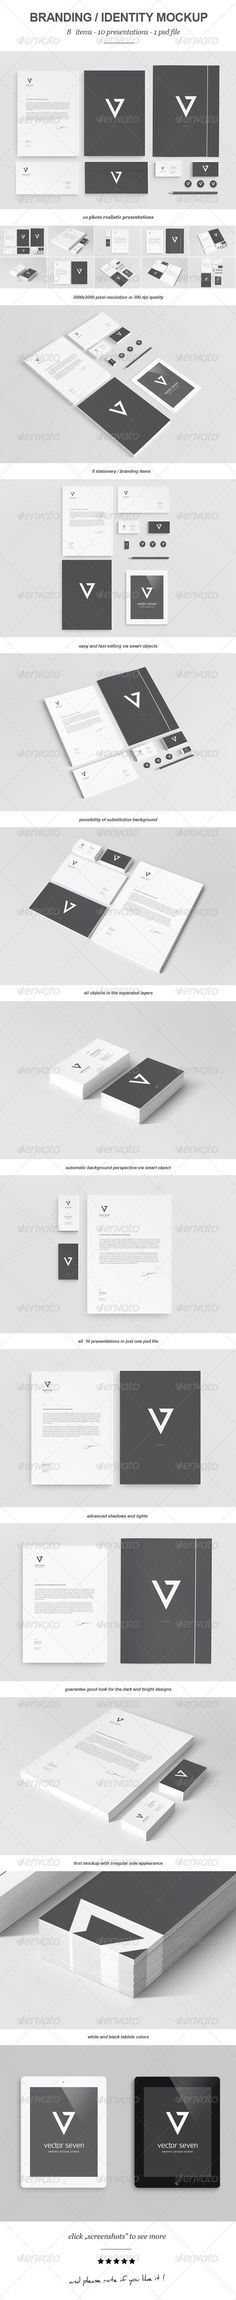 Branding / Identity Mock-up II -- Photorealistic Branding / Identity/ Stationary Mock-up. So much in just one PSD file. Easy to use with smart objects. Just open the psd file and then replace all of the objects. For beginners I prepared a help file.